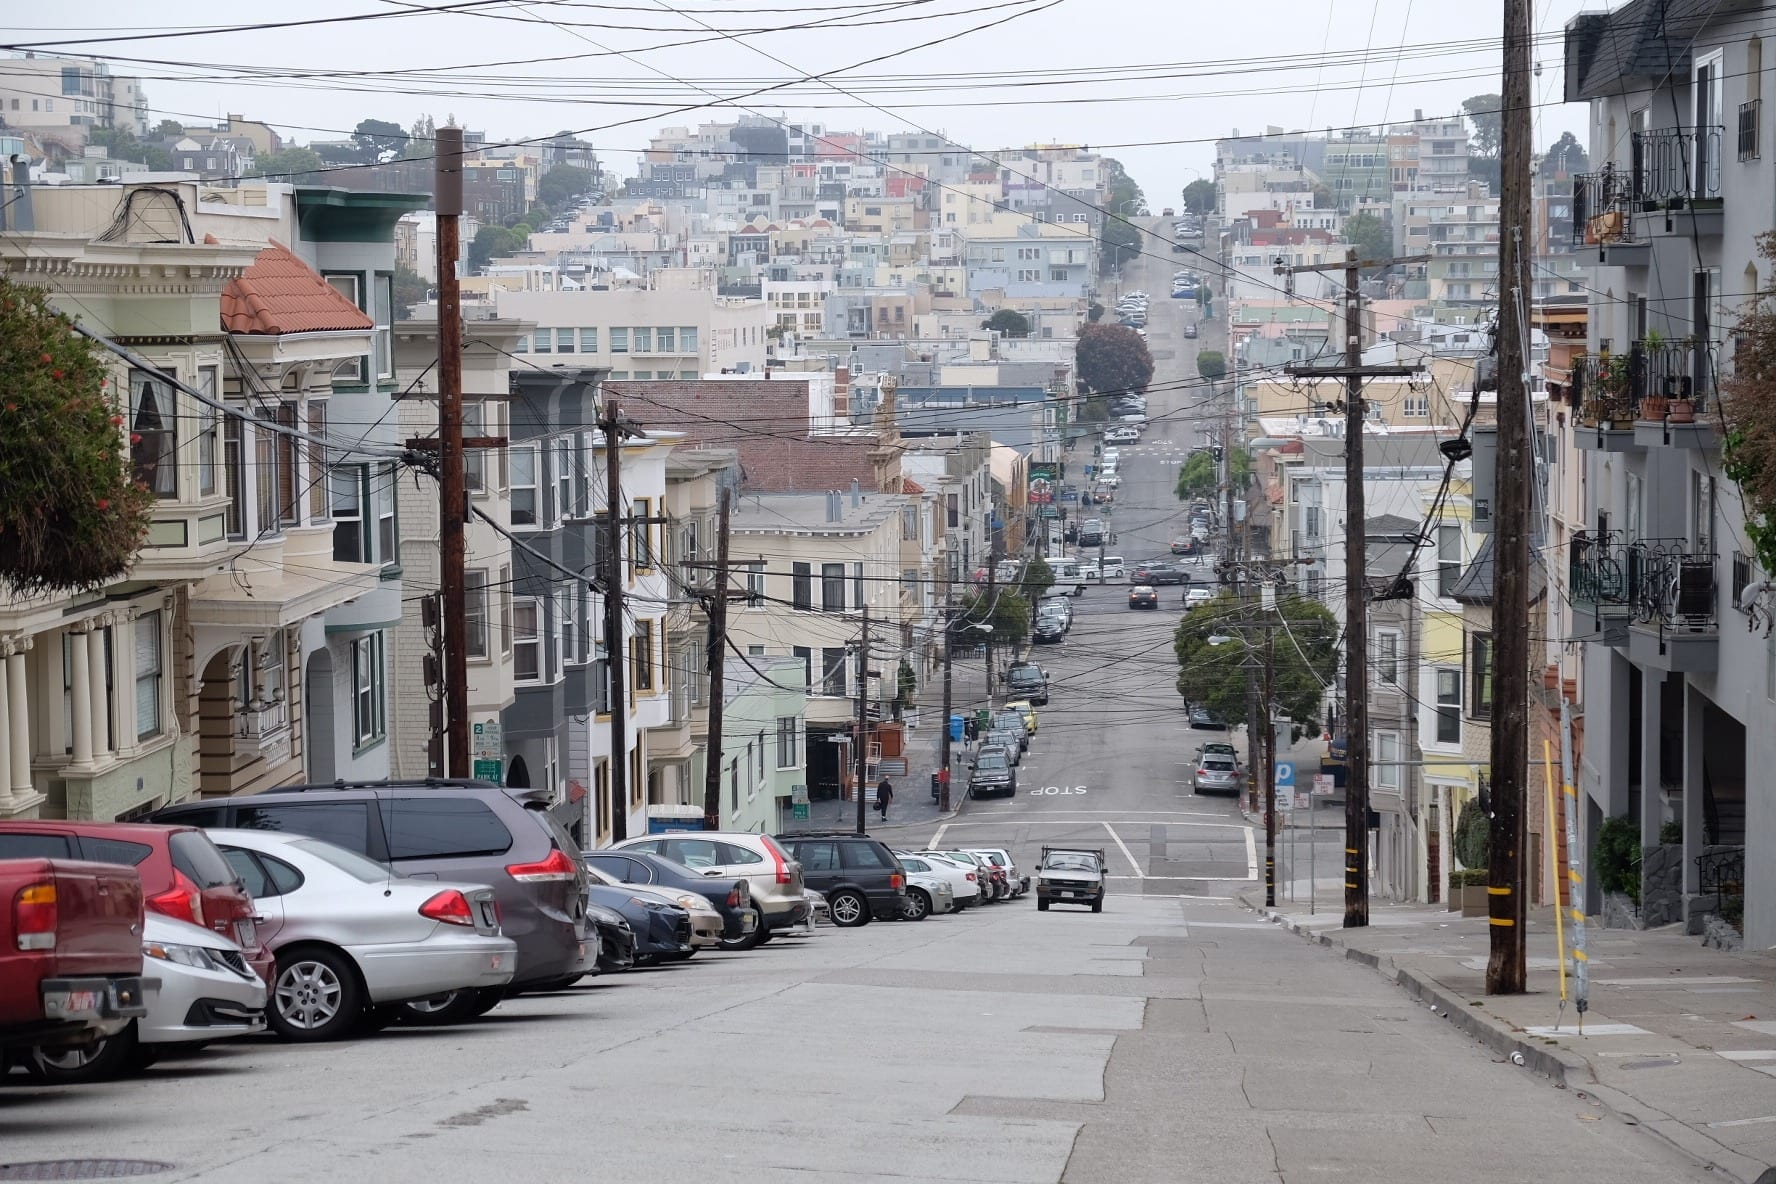 Gray morning in Russian hill, San Francisco, houses descending down steep hills in San Francisco.